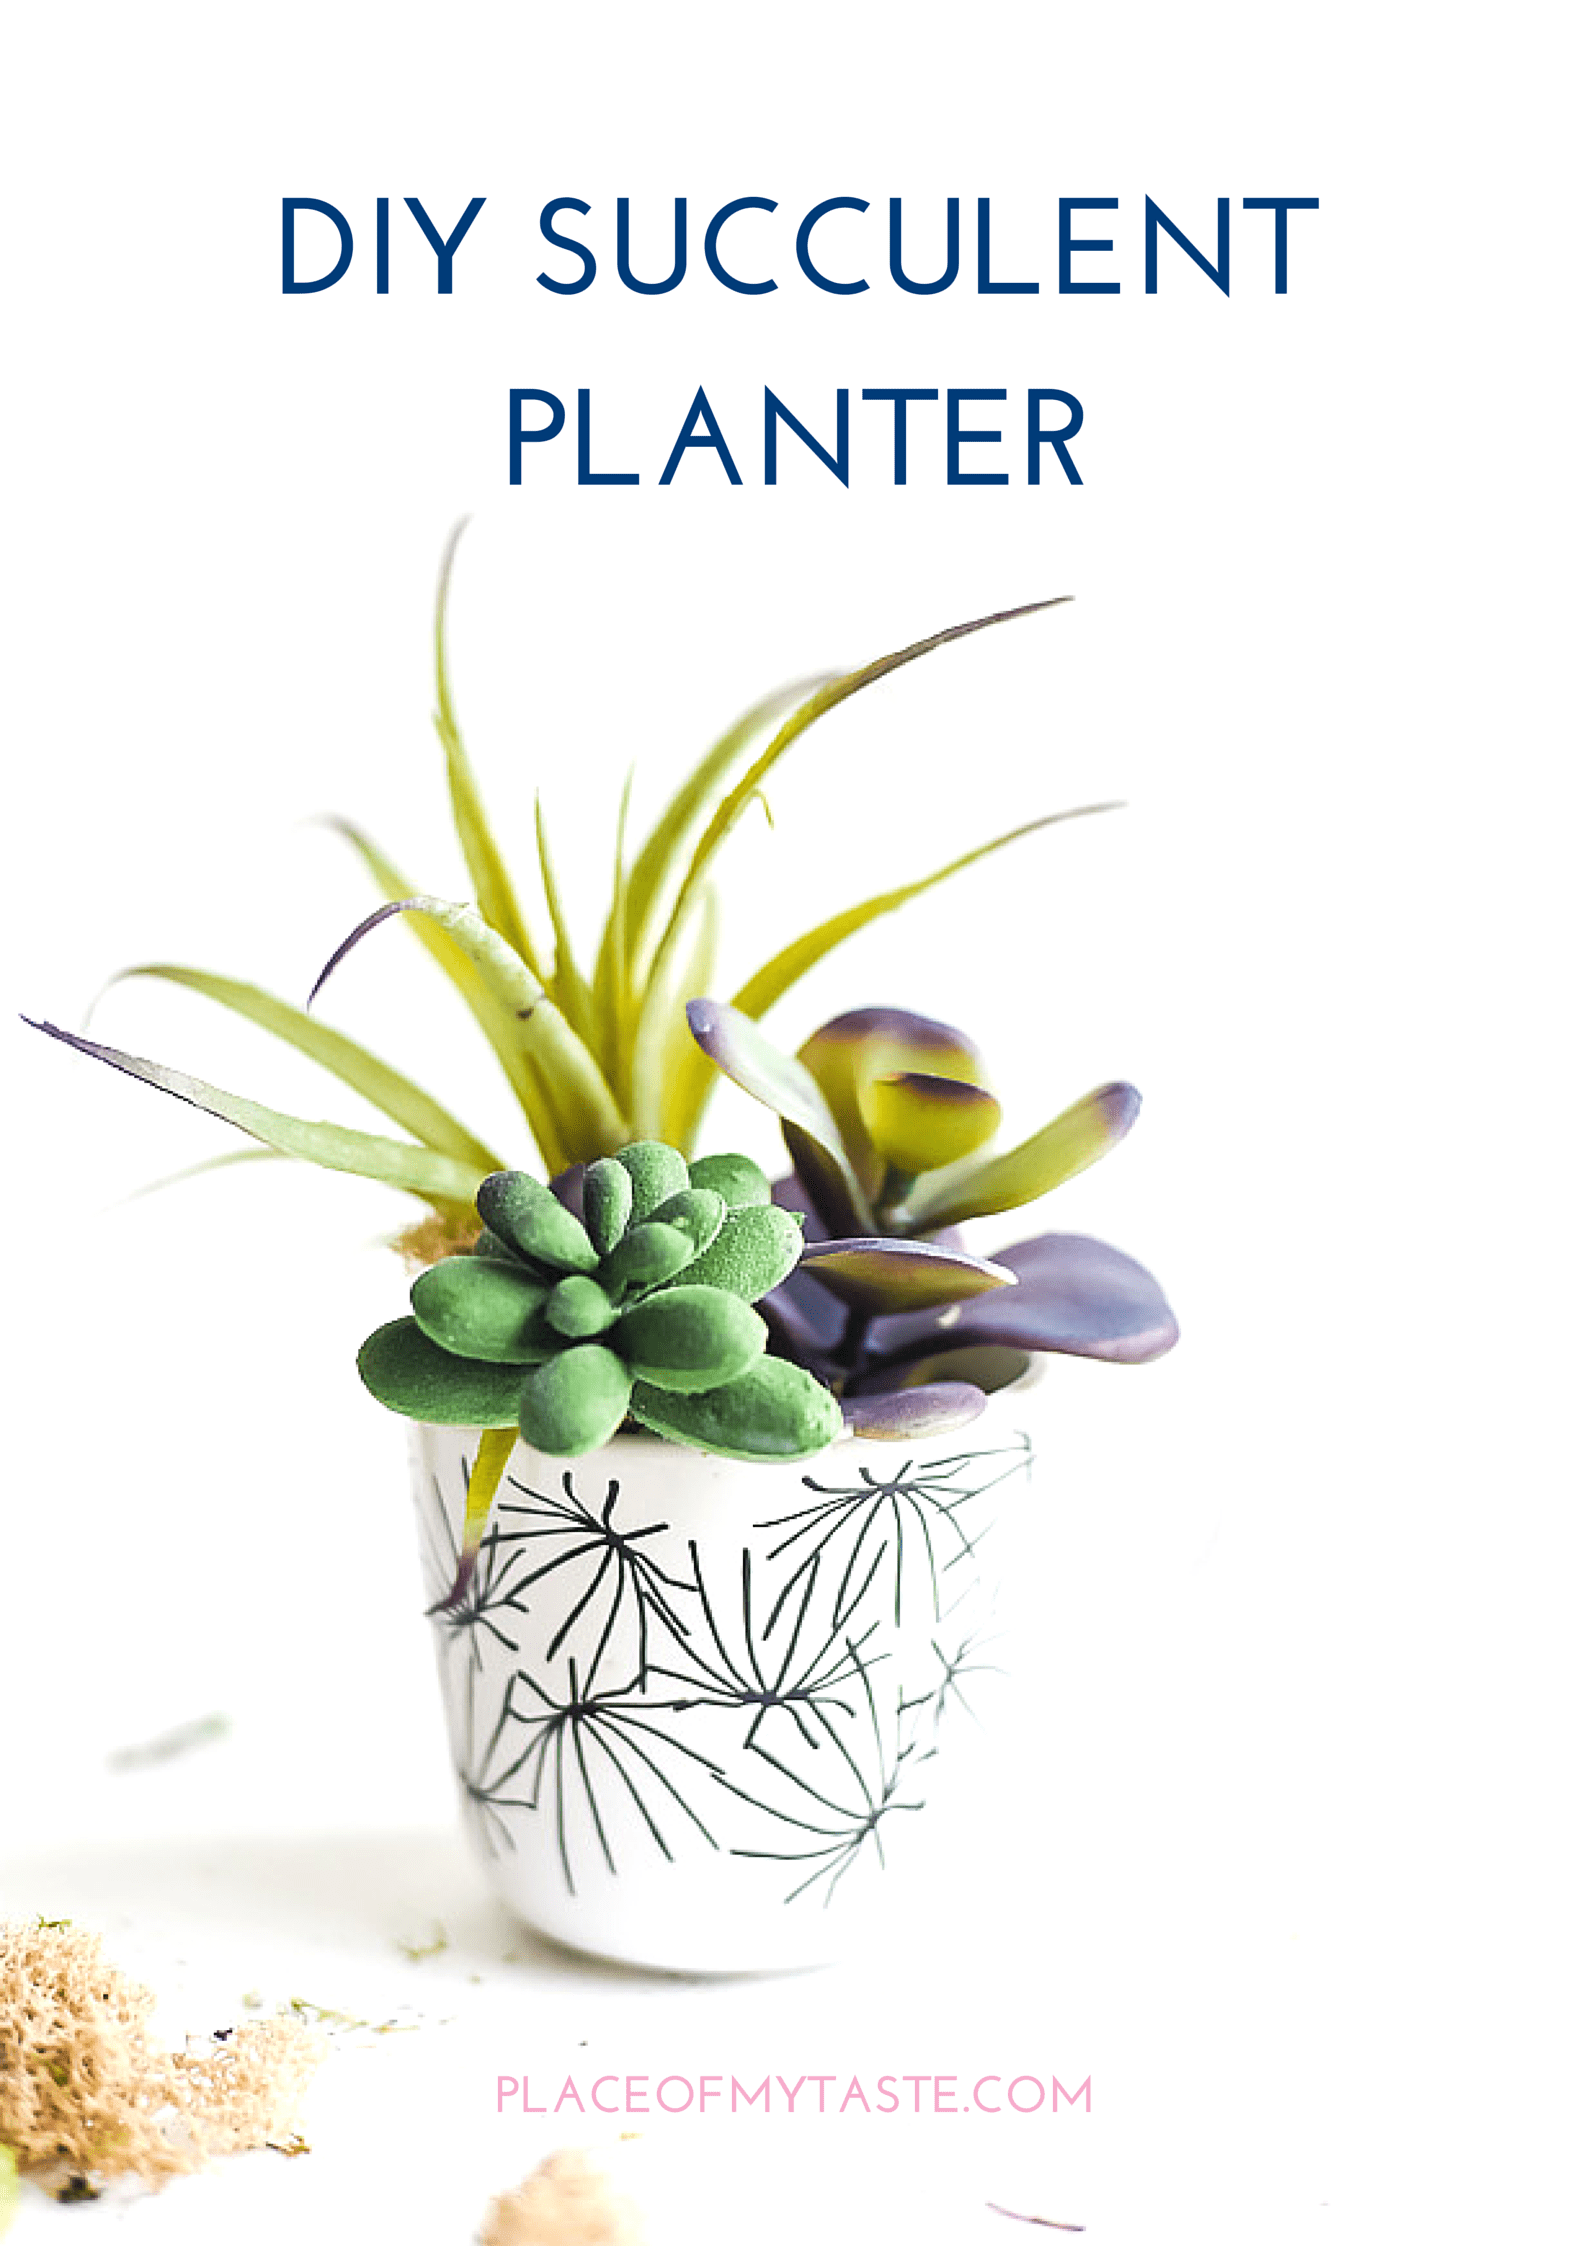 DIY SUCCULENT PLANTER (1)